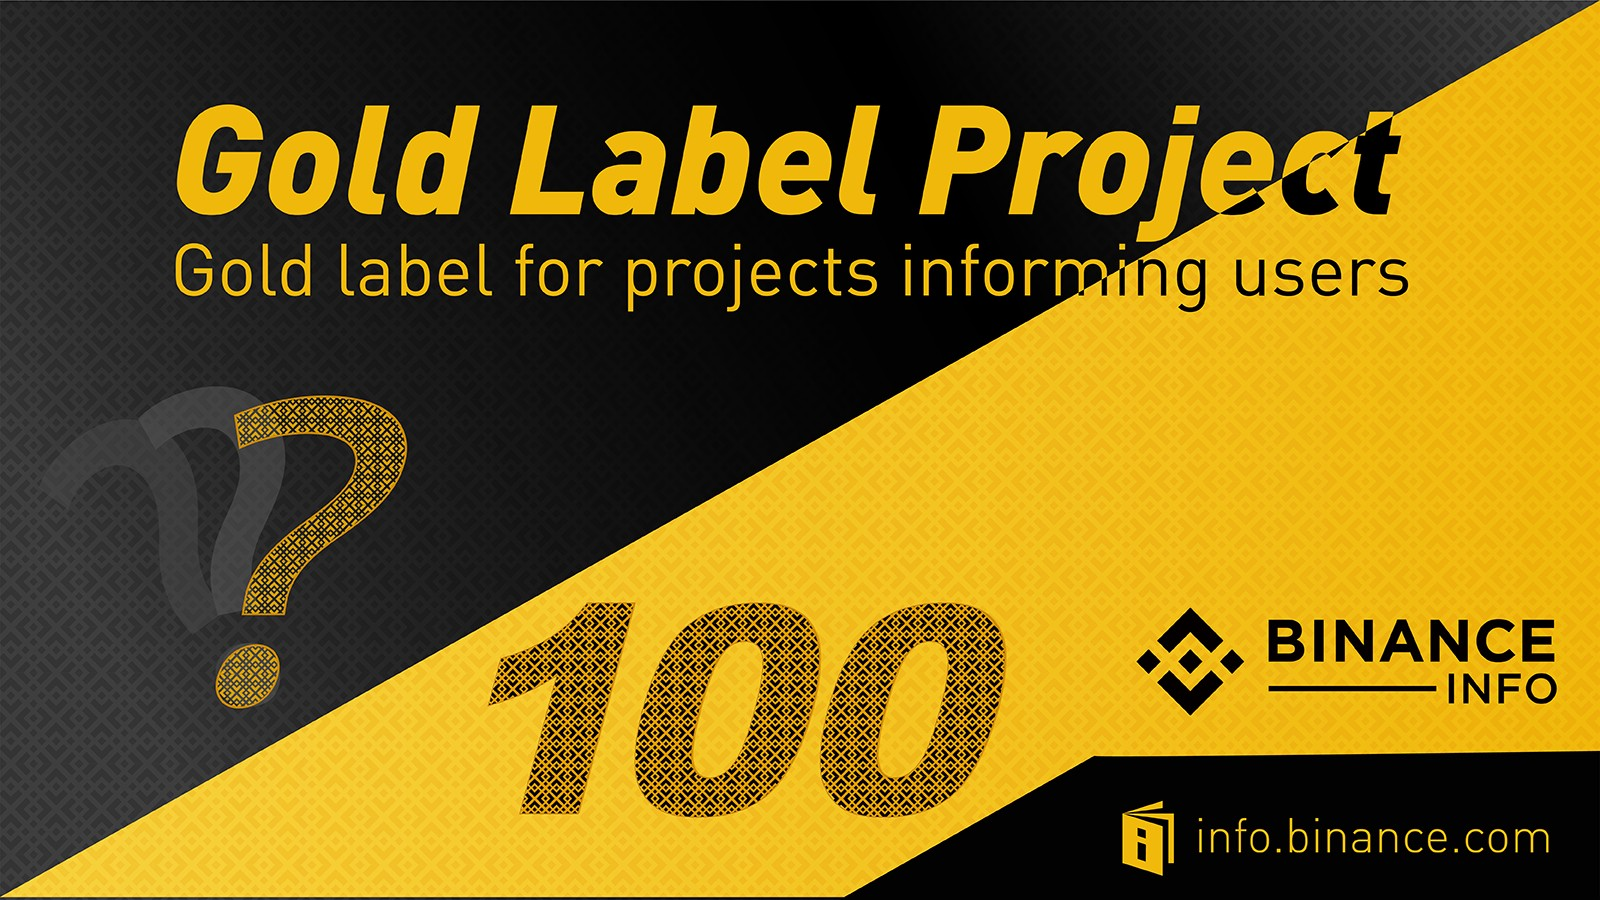 Binance Info Launches Gold Label Project - Binance Exchange - Medium